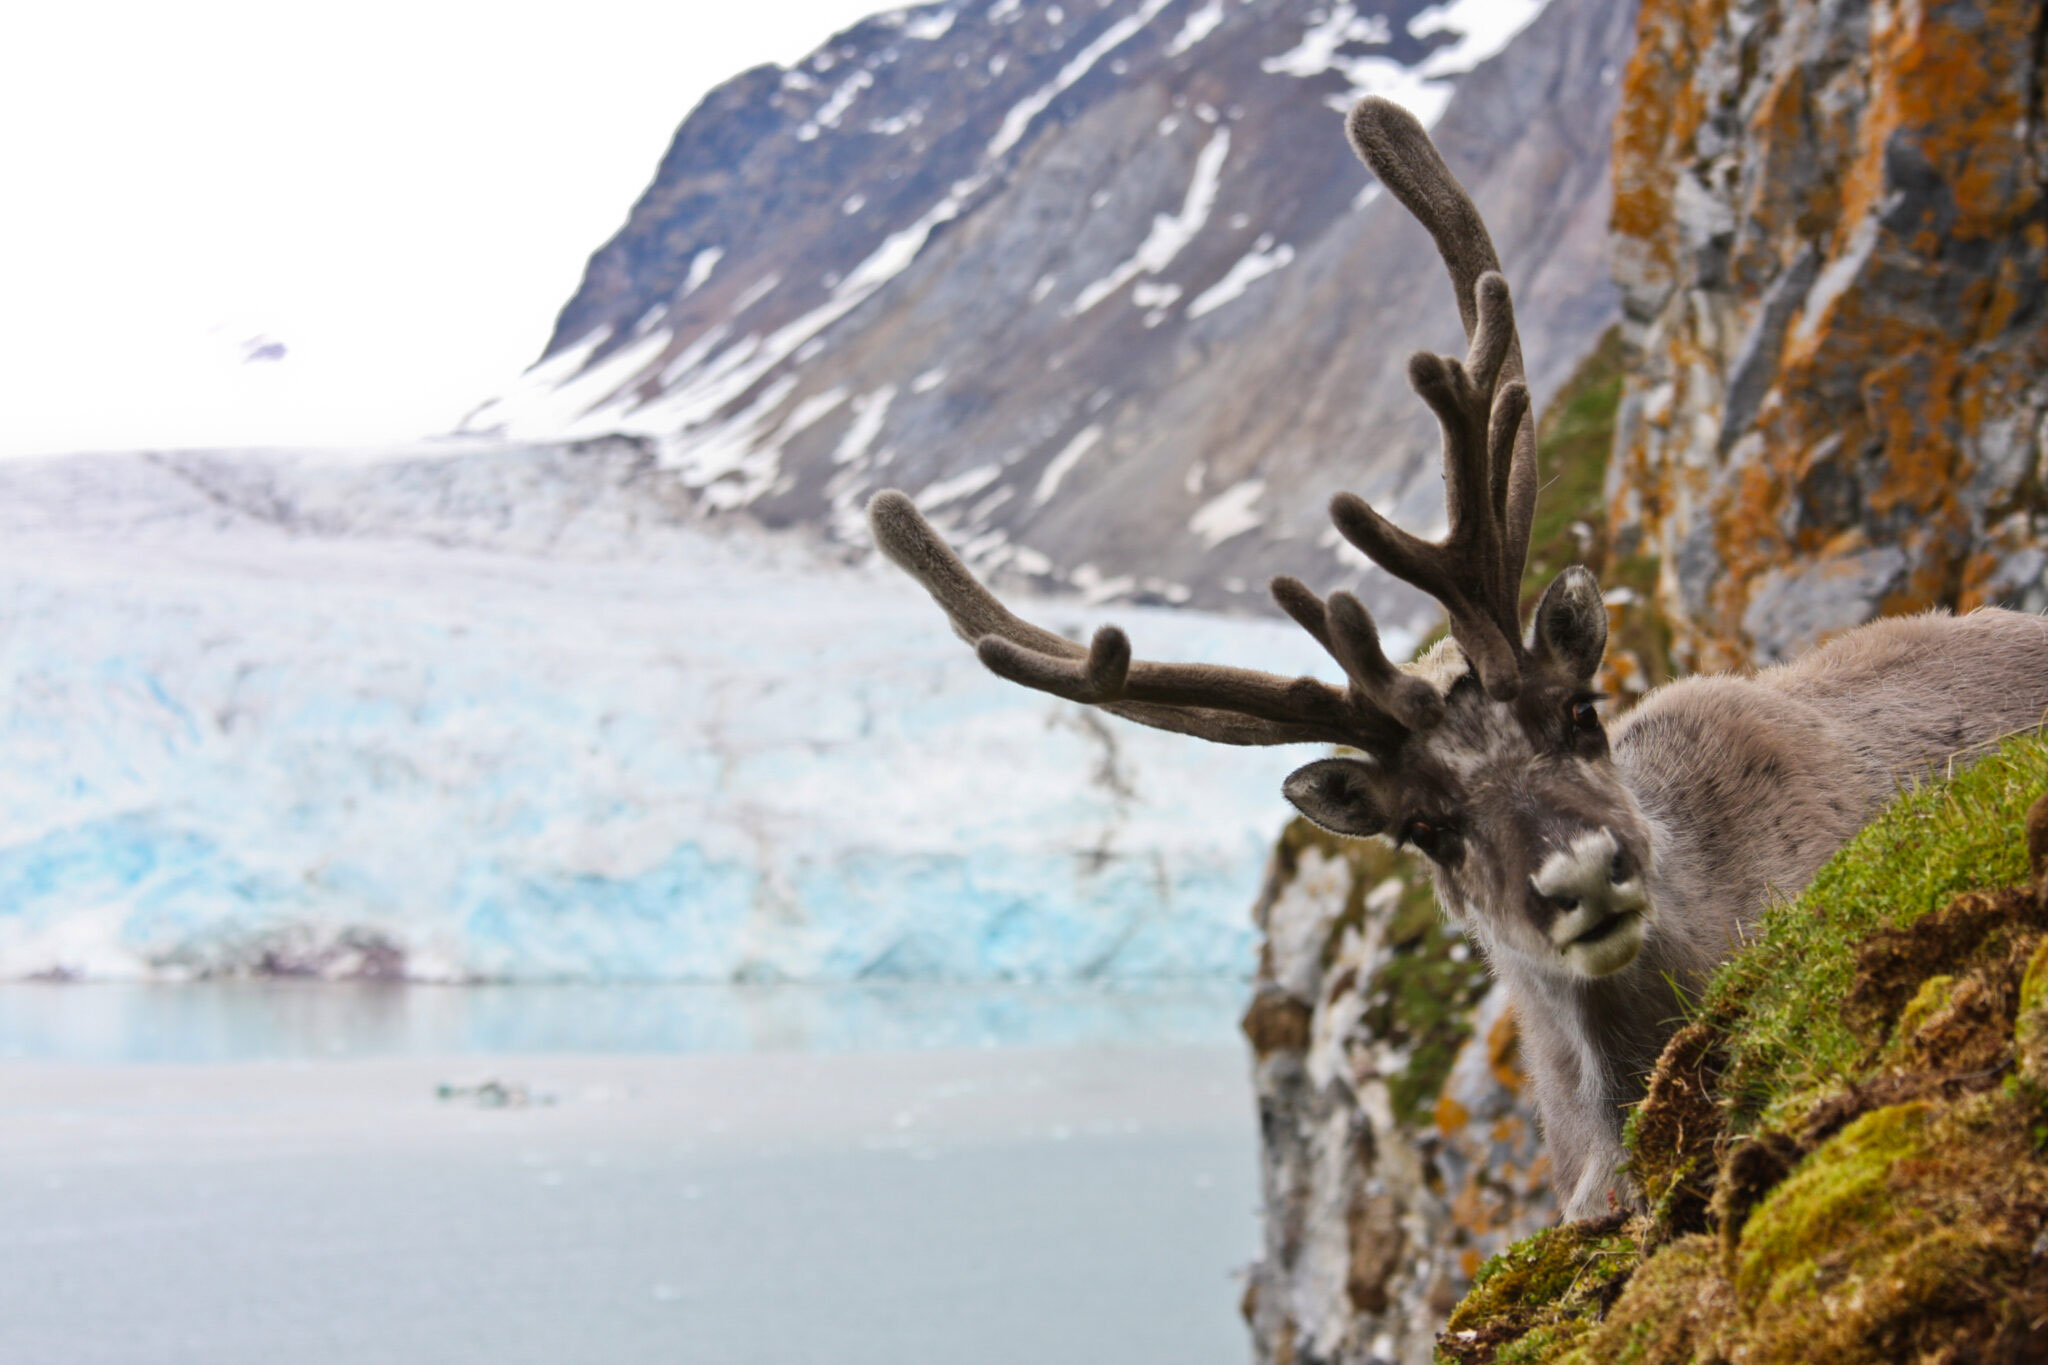 What can 40 years of reindeer monitoring data tell us?